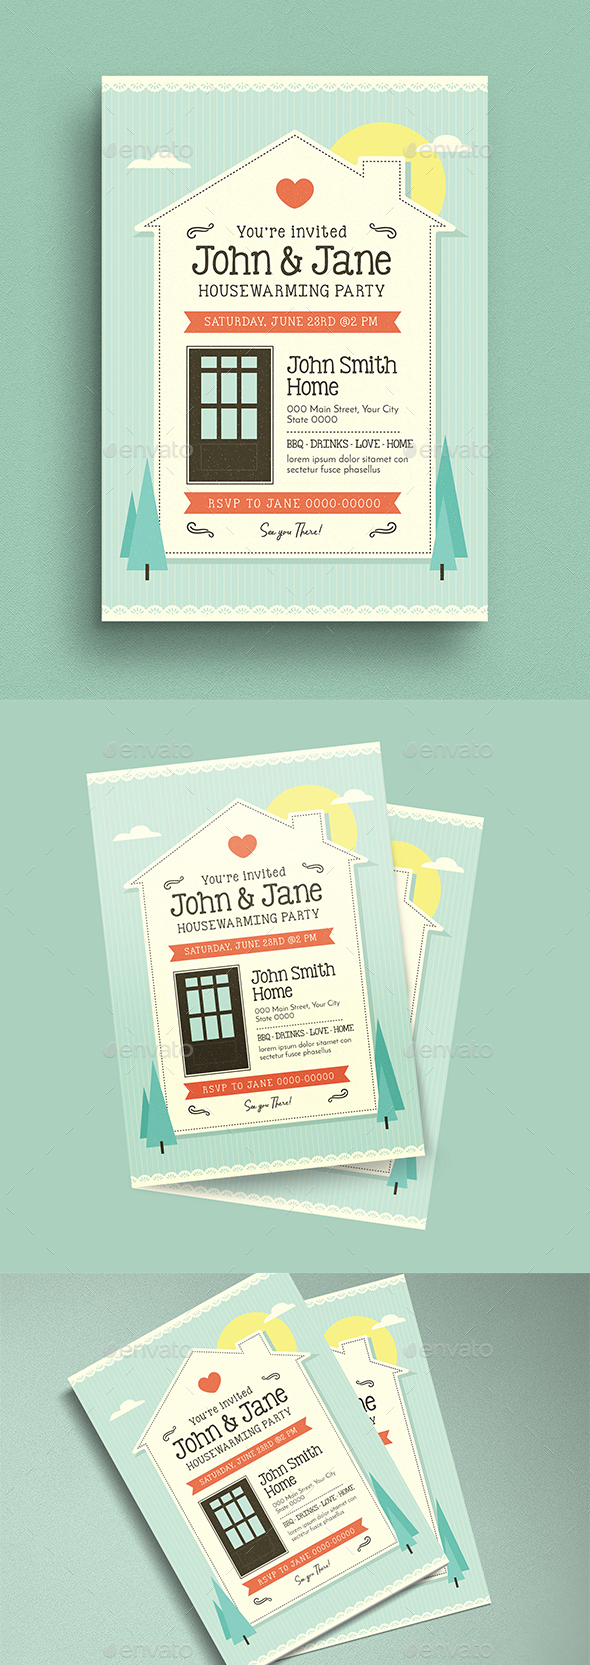 House Warming Flyer/Invitation - Cards & Invites Print Templates